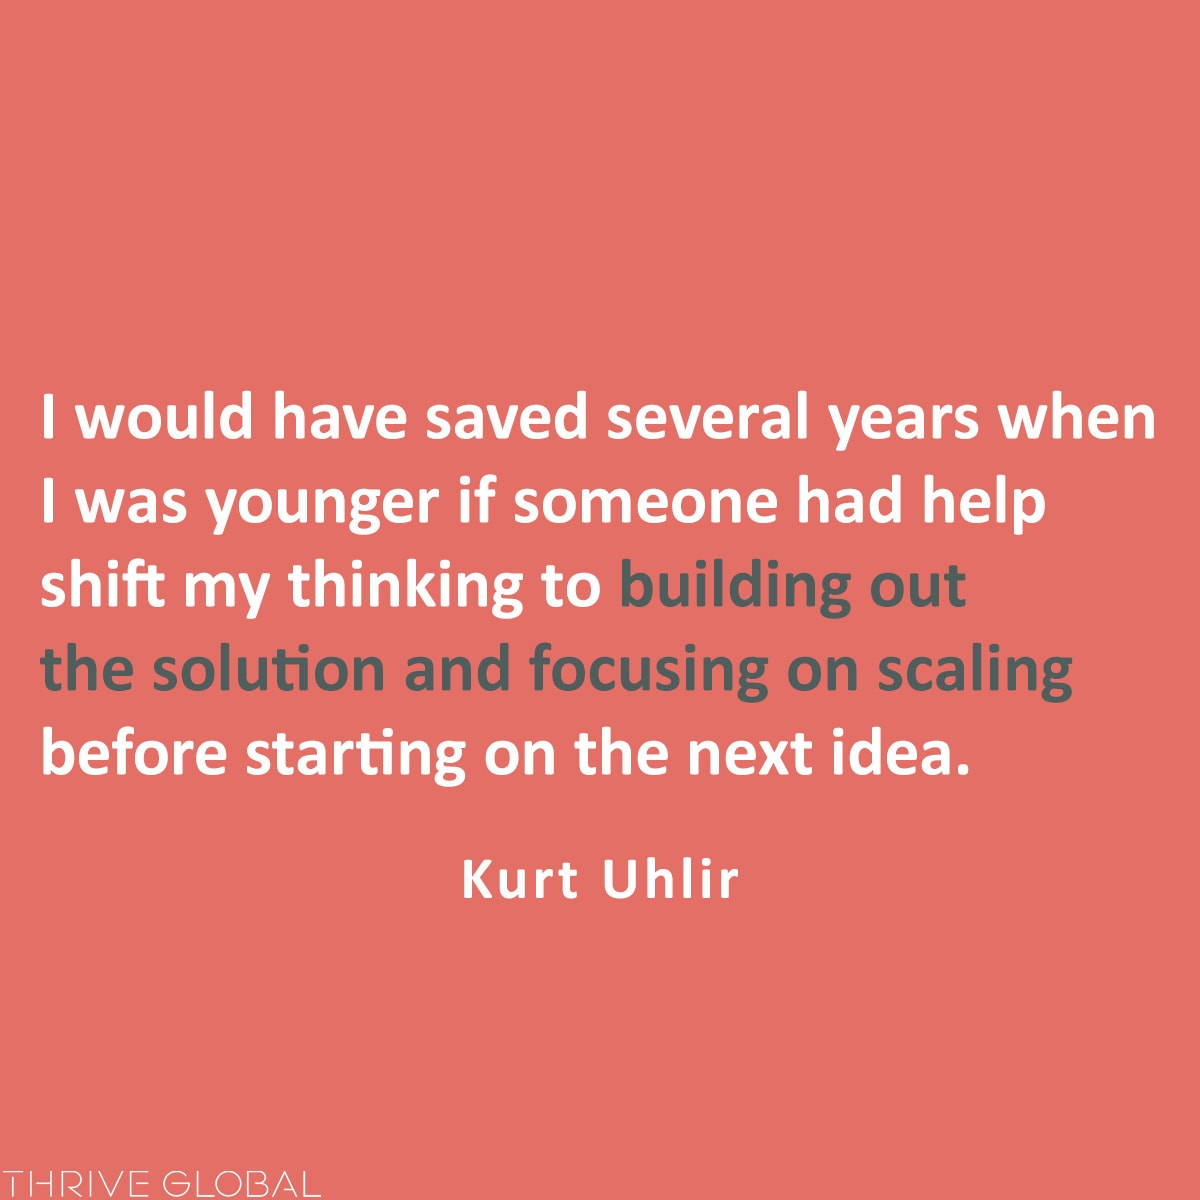 I would have saved several years when I was younger if someone had help shift my thinking to building out the solution and focusing on scaling before starting on the next idea.